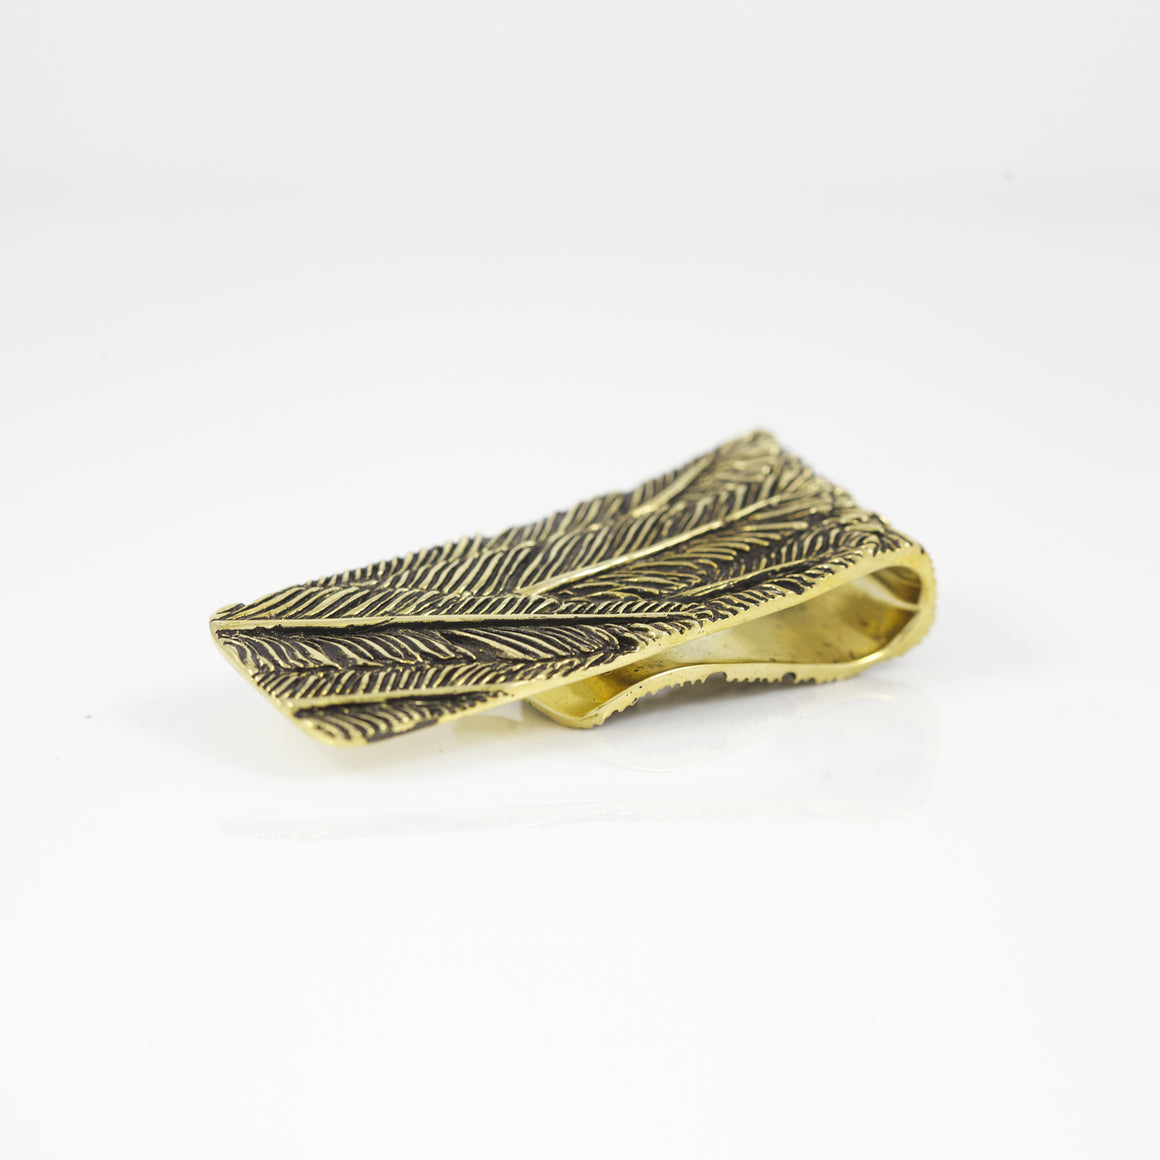 YELLOW BRASS FEATHER PATTERN MONEY CLIP